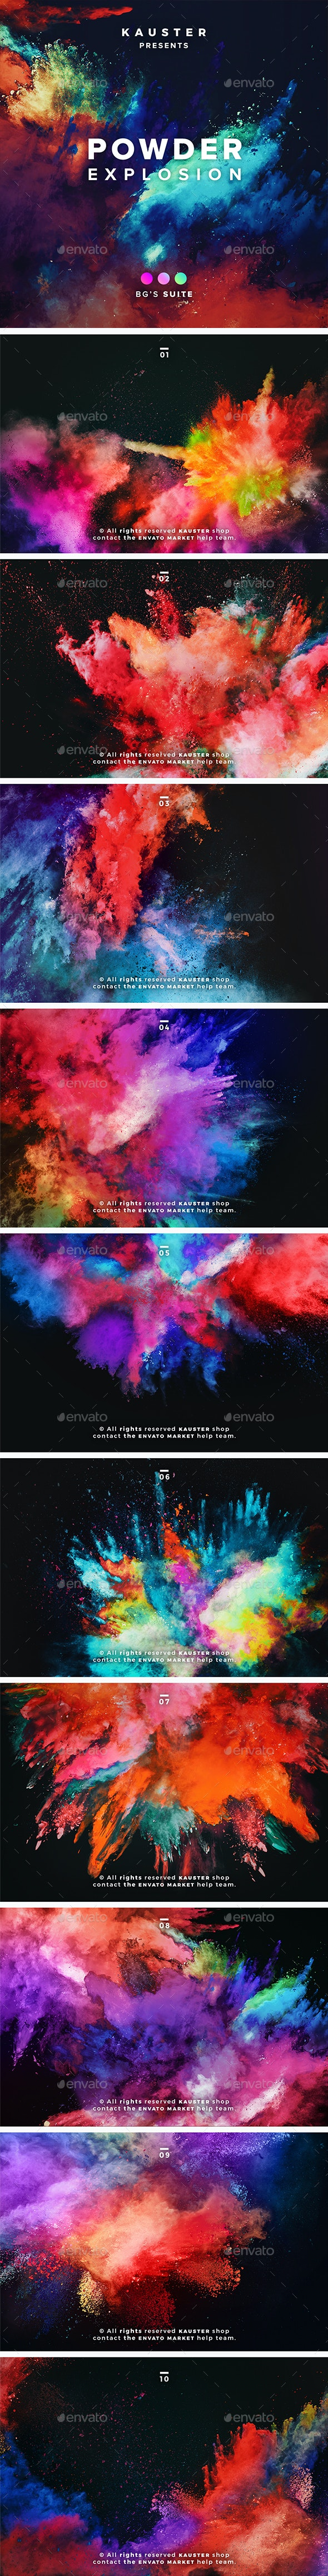 Powder Explosion Backgrounds - Abstract Backgrounds